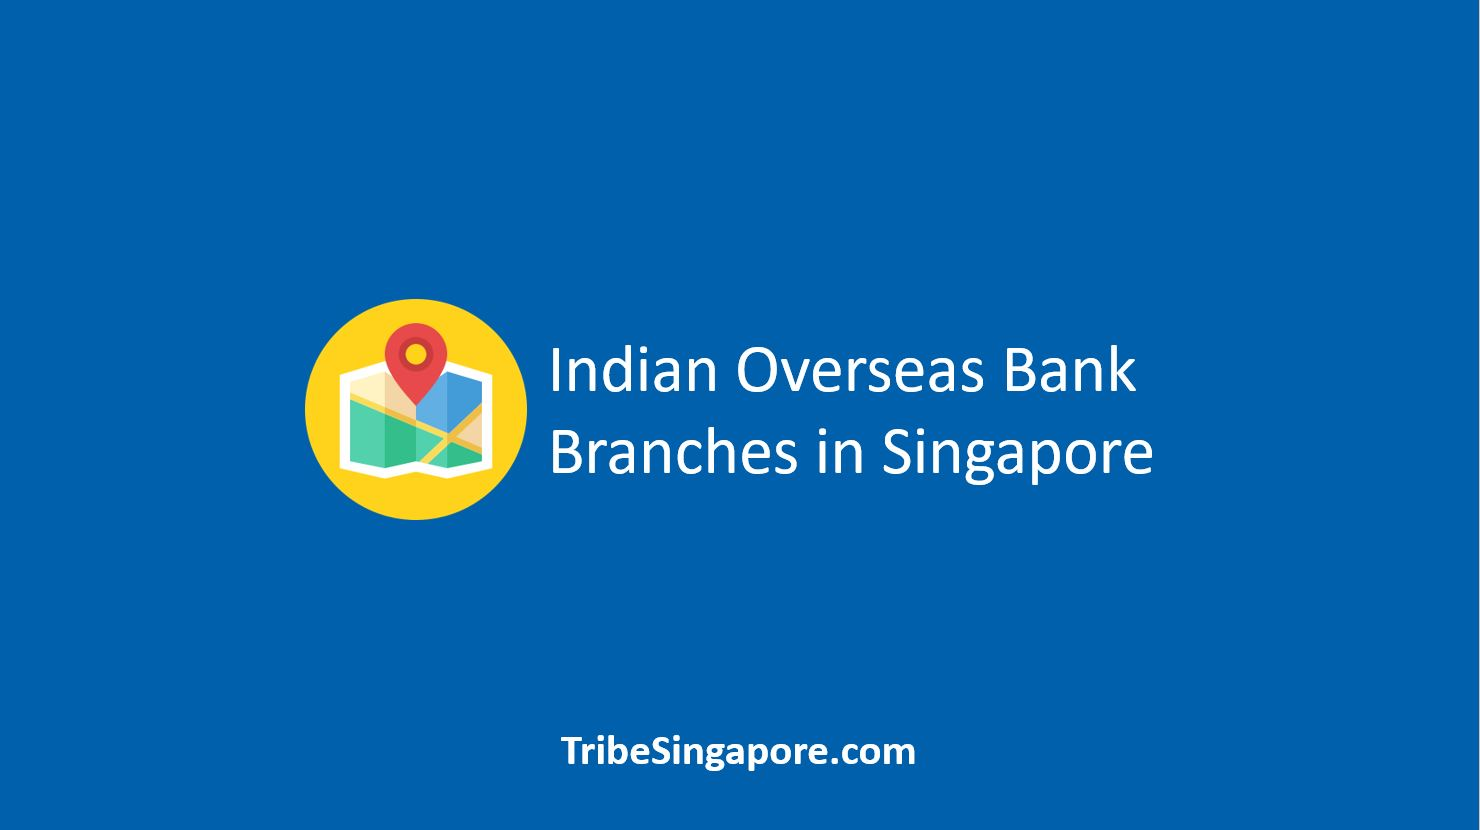 Indian Overseas Bank Branches in Singapore